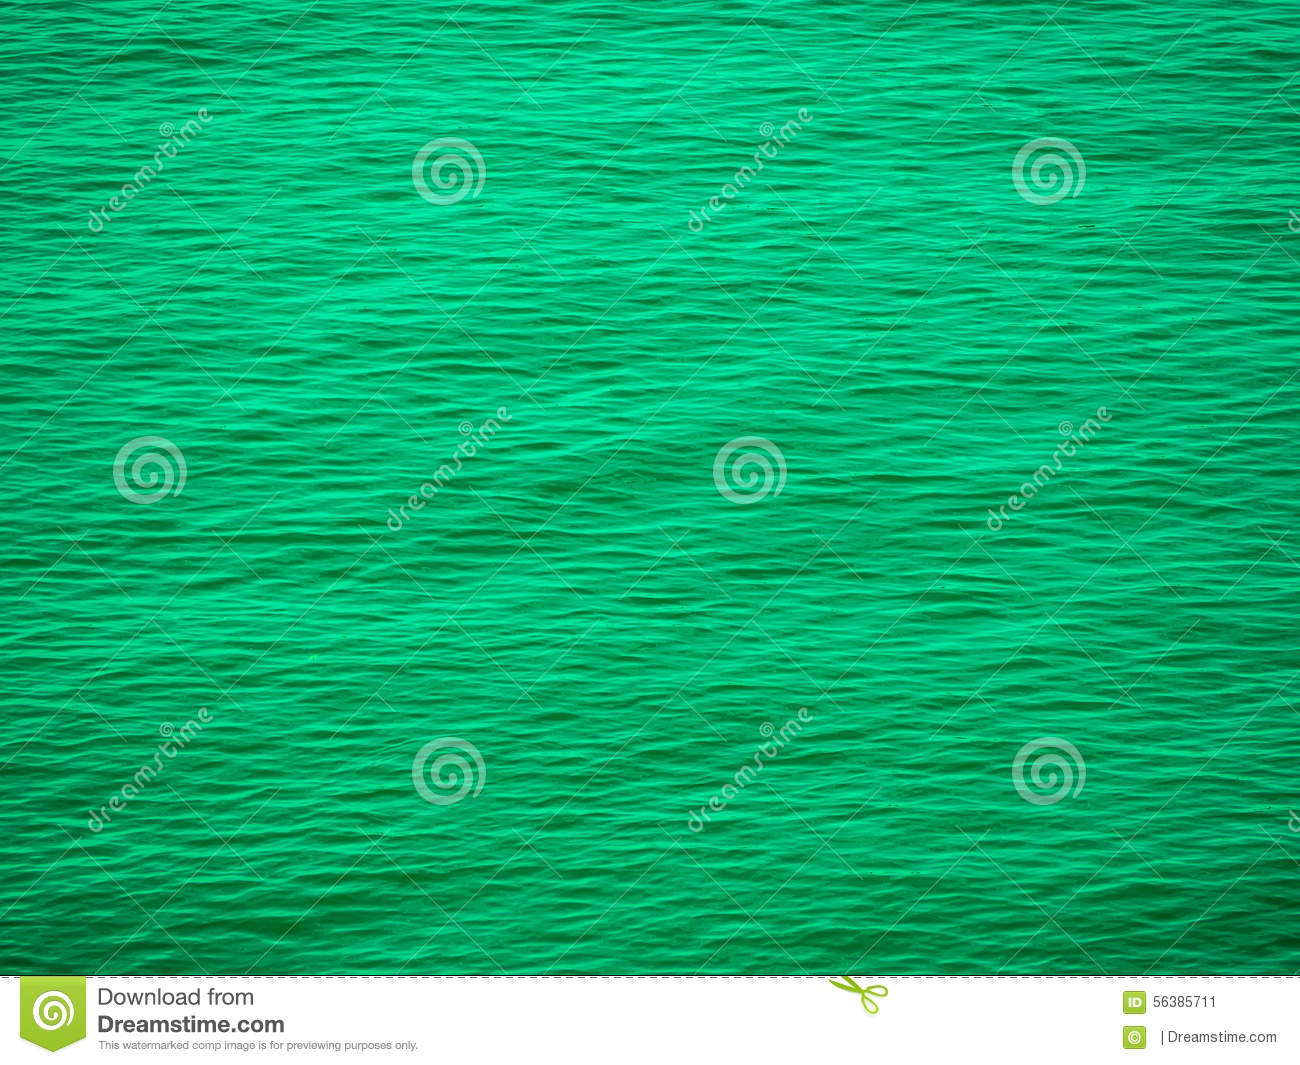 Green river wave